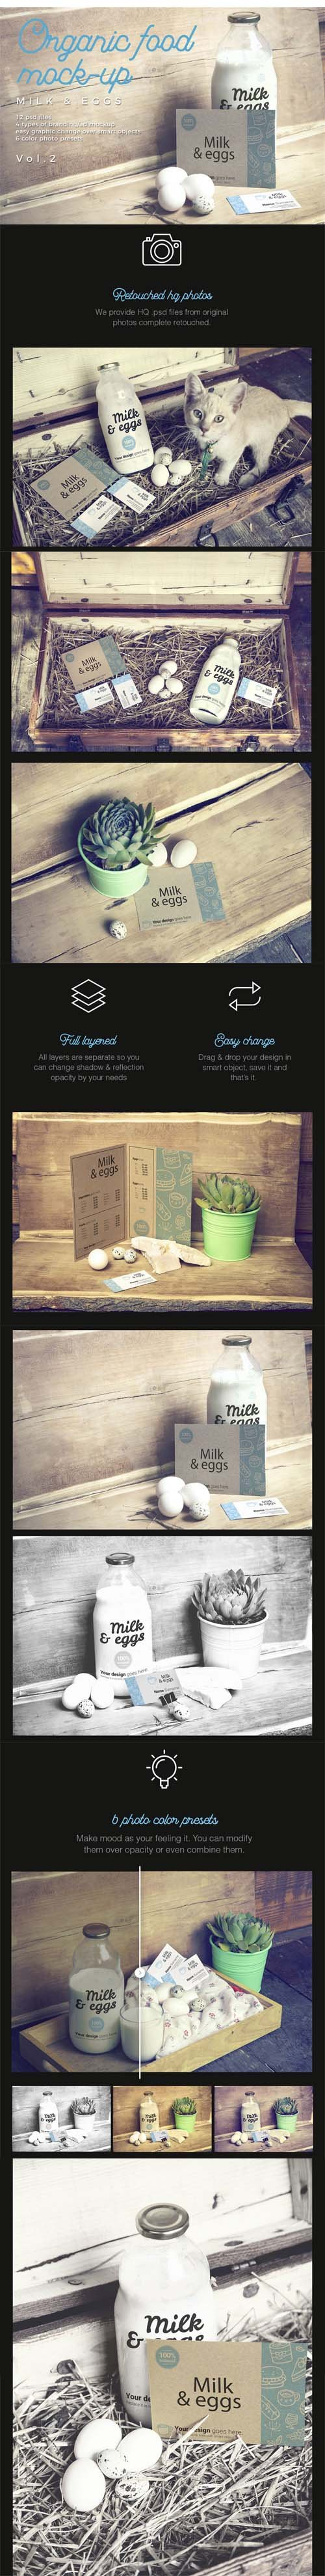 Organic Food Photo Mockup / Milk & Eggs Vol.2